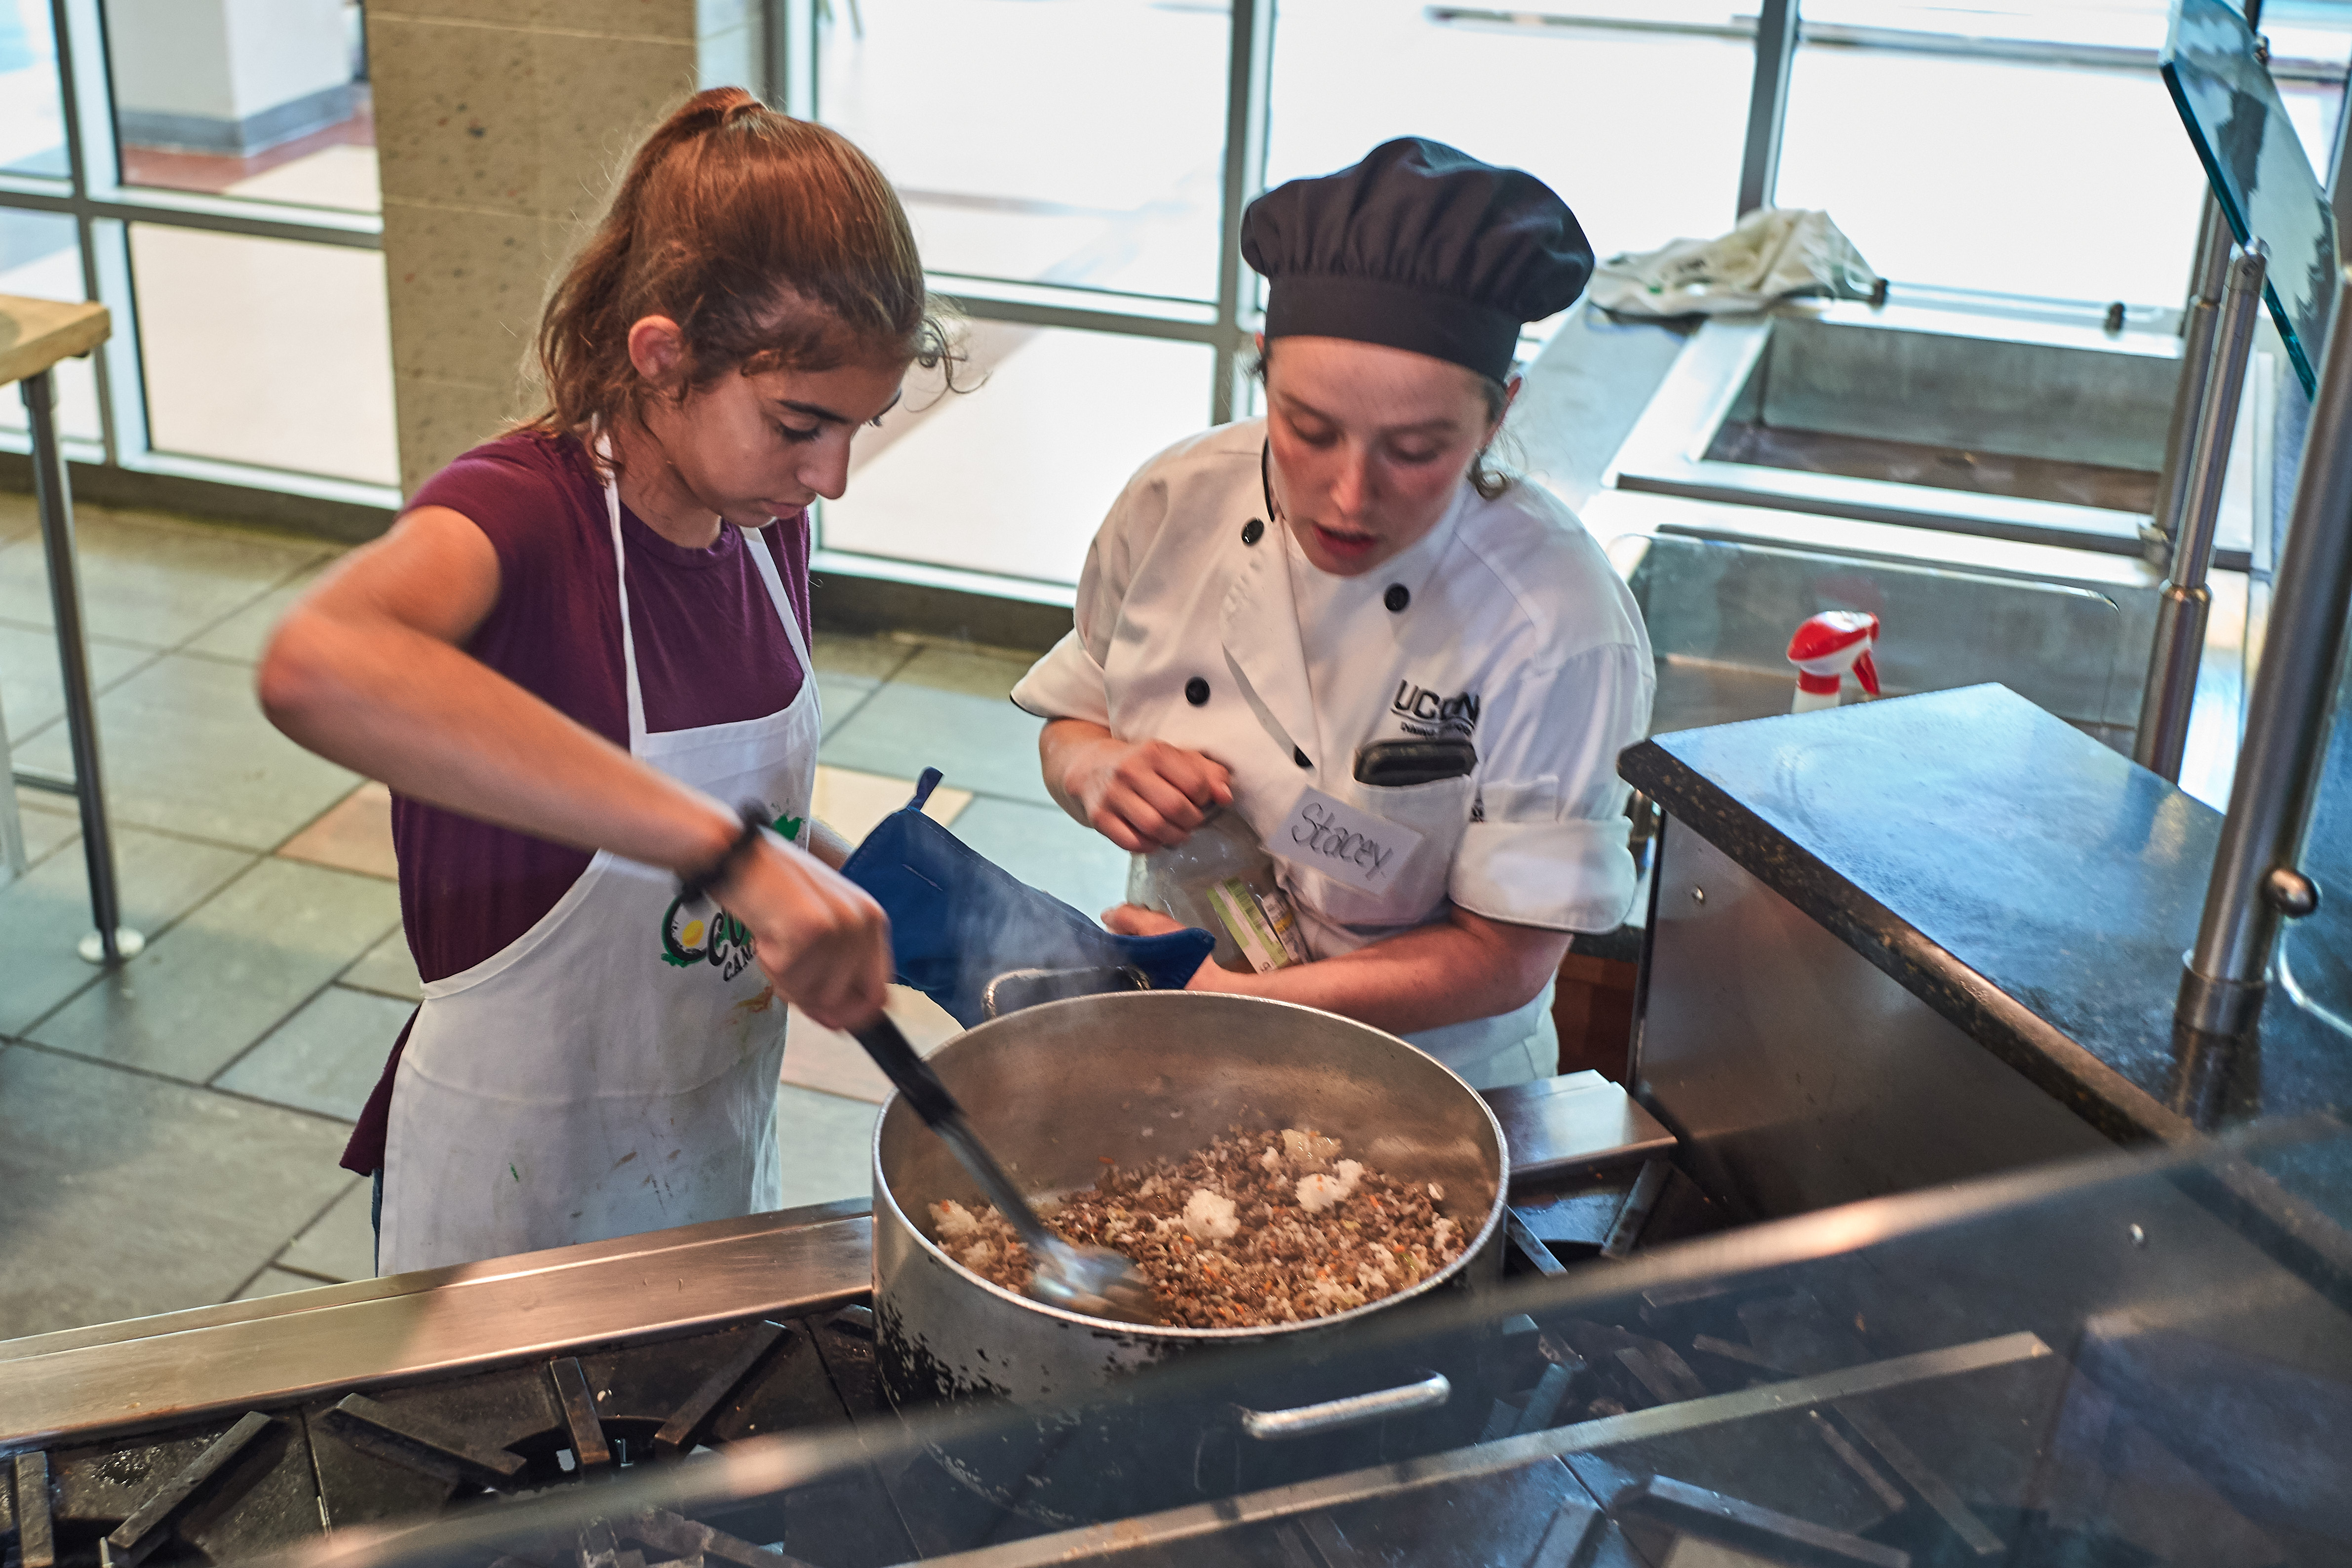 Scarlett Pauloski, 13, of Old Saybrook, left, and Chef Stacy Guitard season taco meat for a main dish during a competition held at the UCann Cook Camp at Gelfenbien Commons on July 18, 2019. (Peter Morenus/UConn Photo)